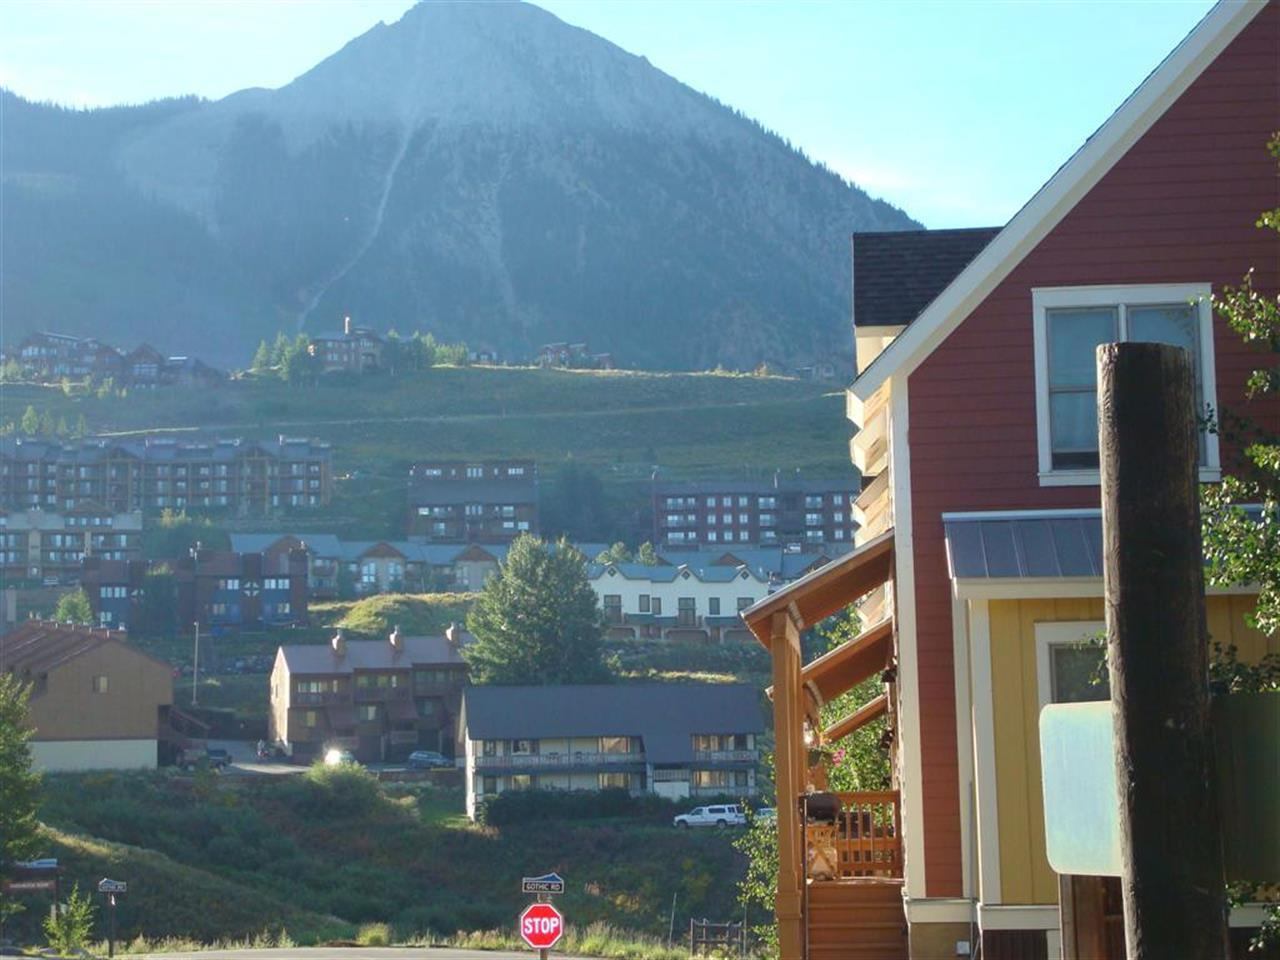 103 Pitchfork # ROCKING E BLDG, Crested Butte, CO 81224